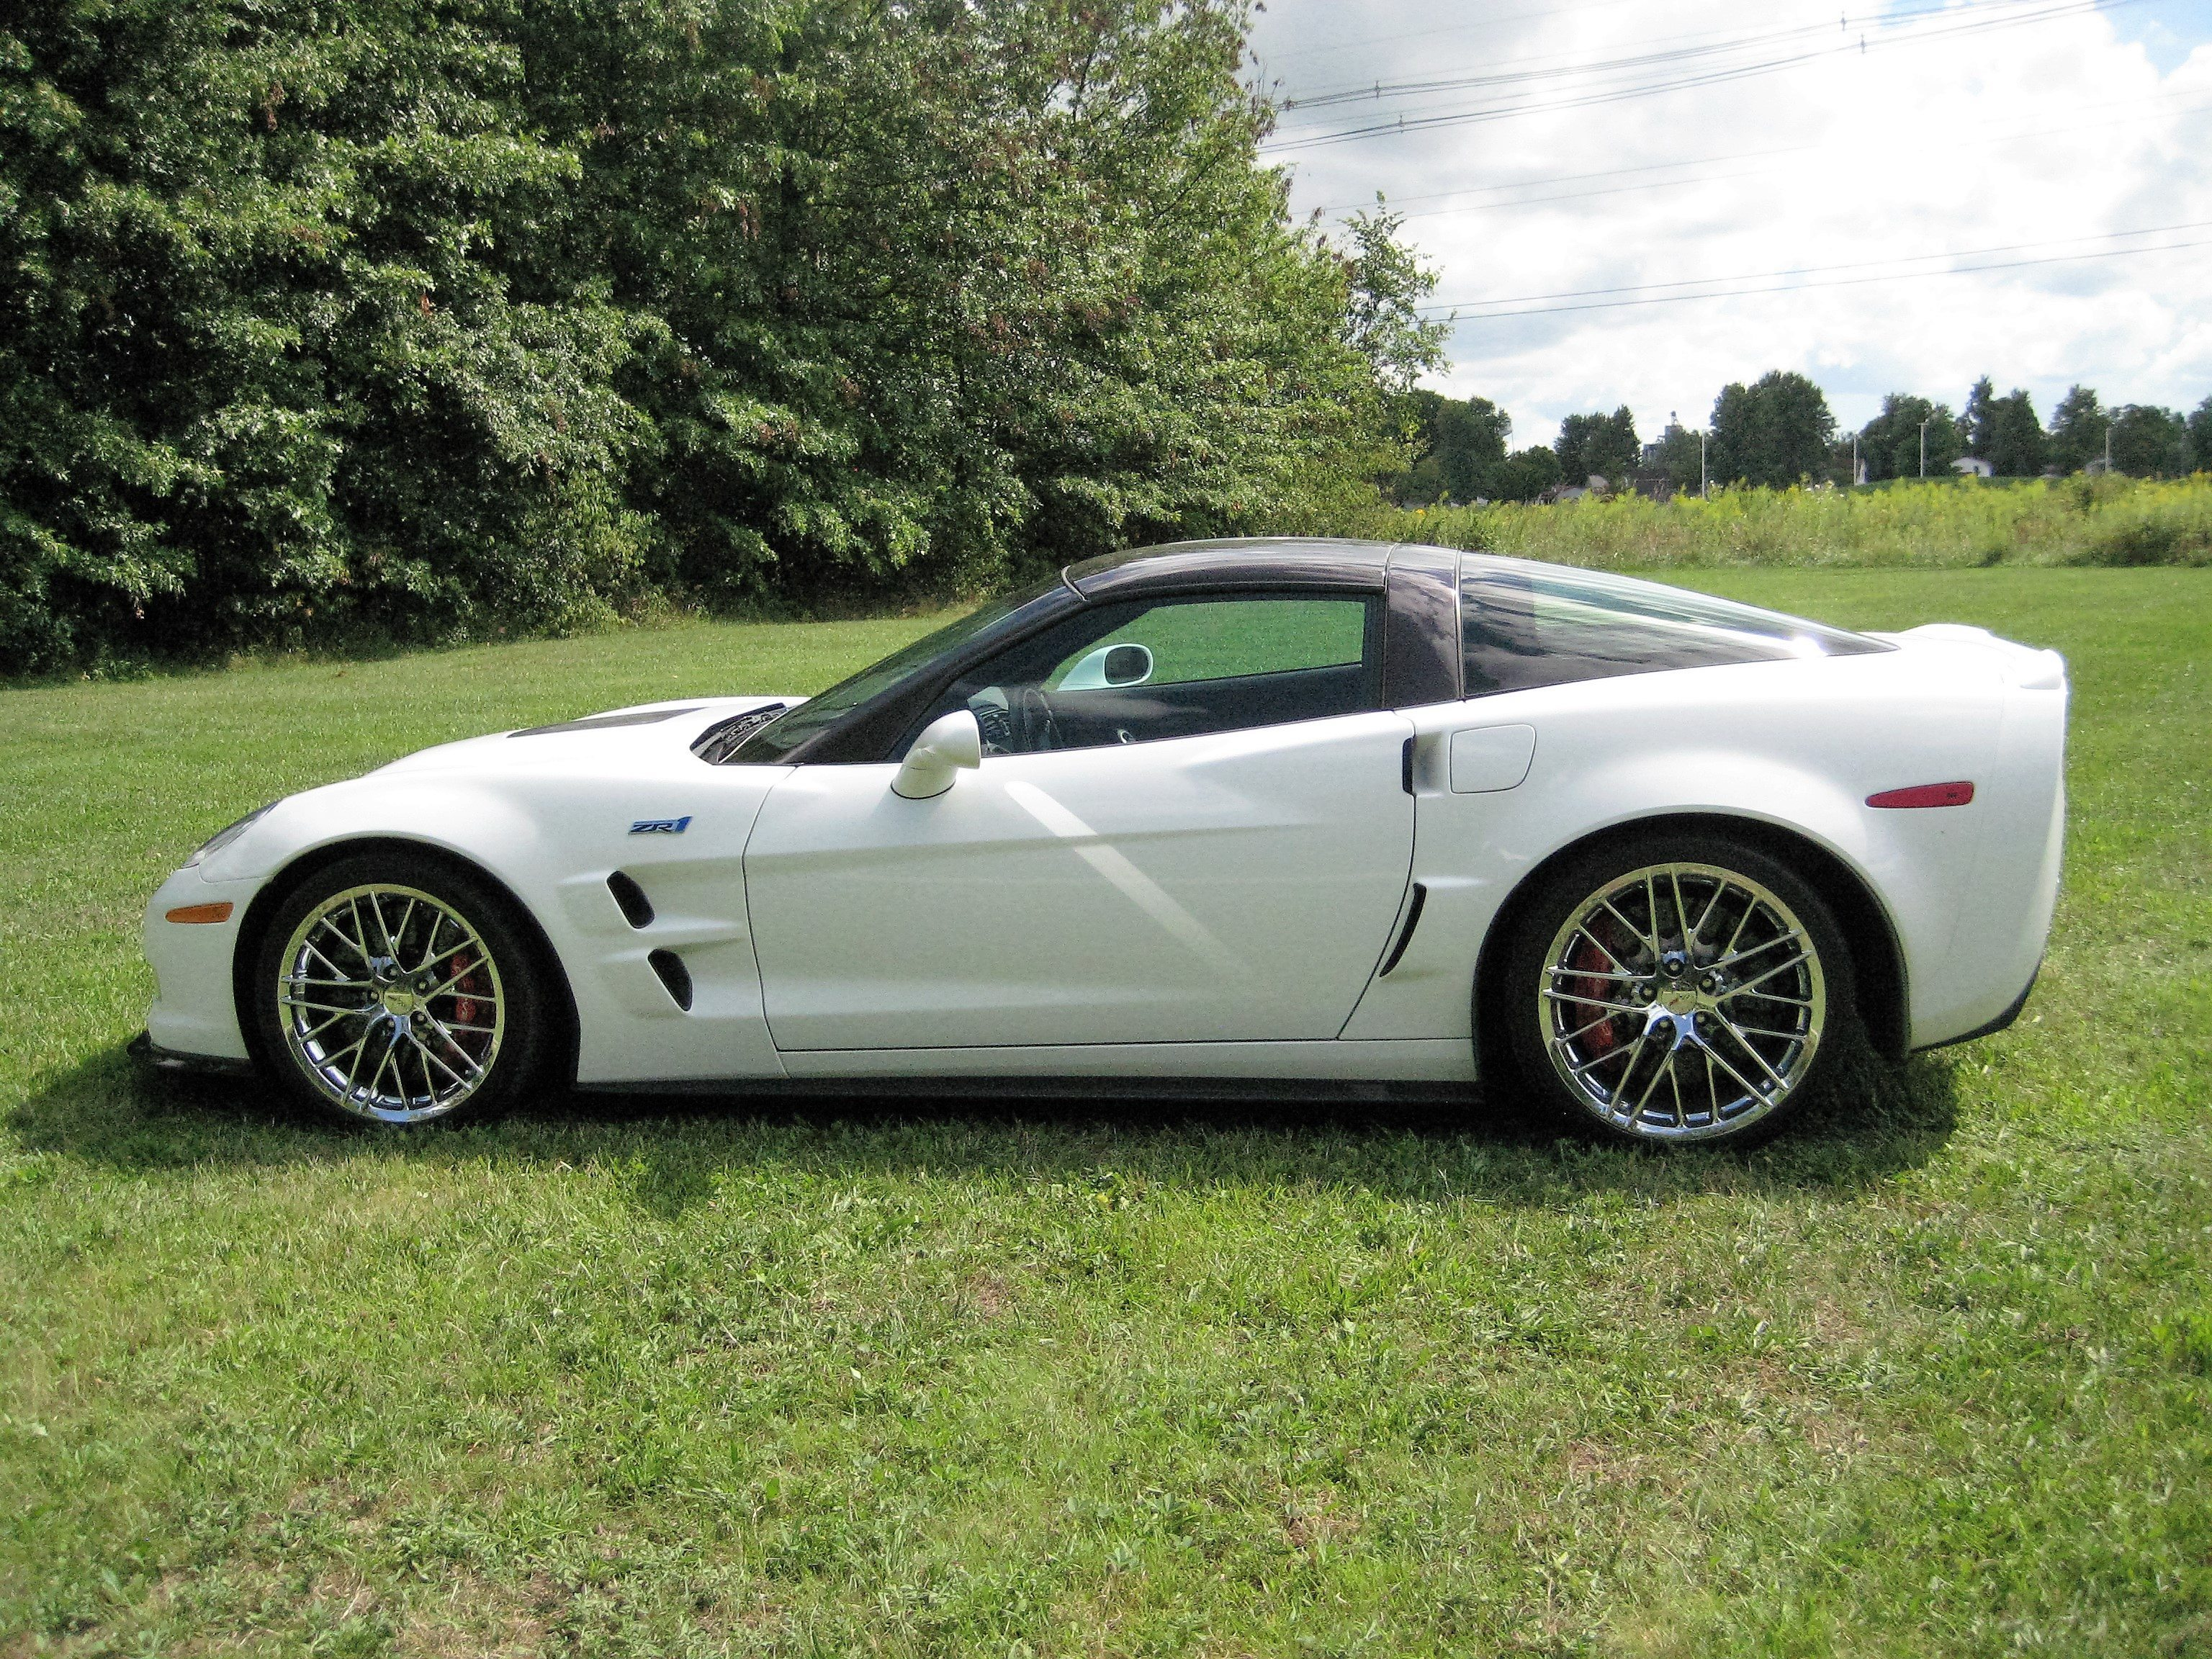 2013 Chevrolet Corvette ZR1